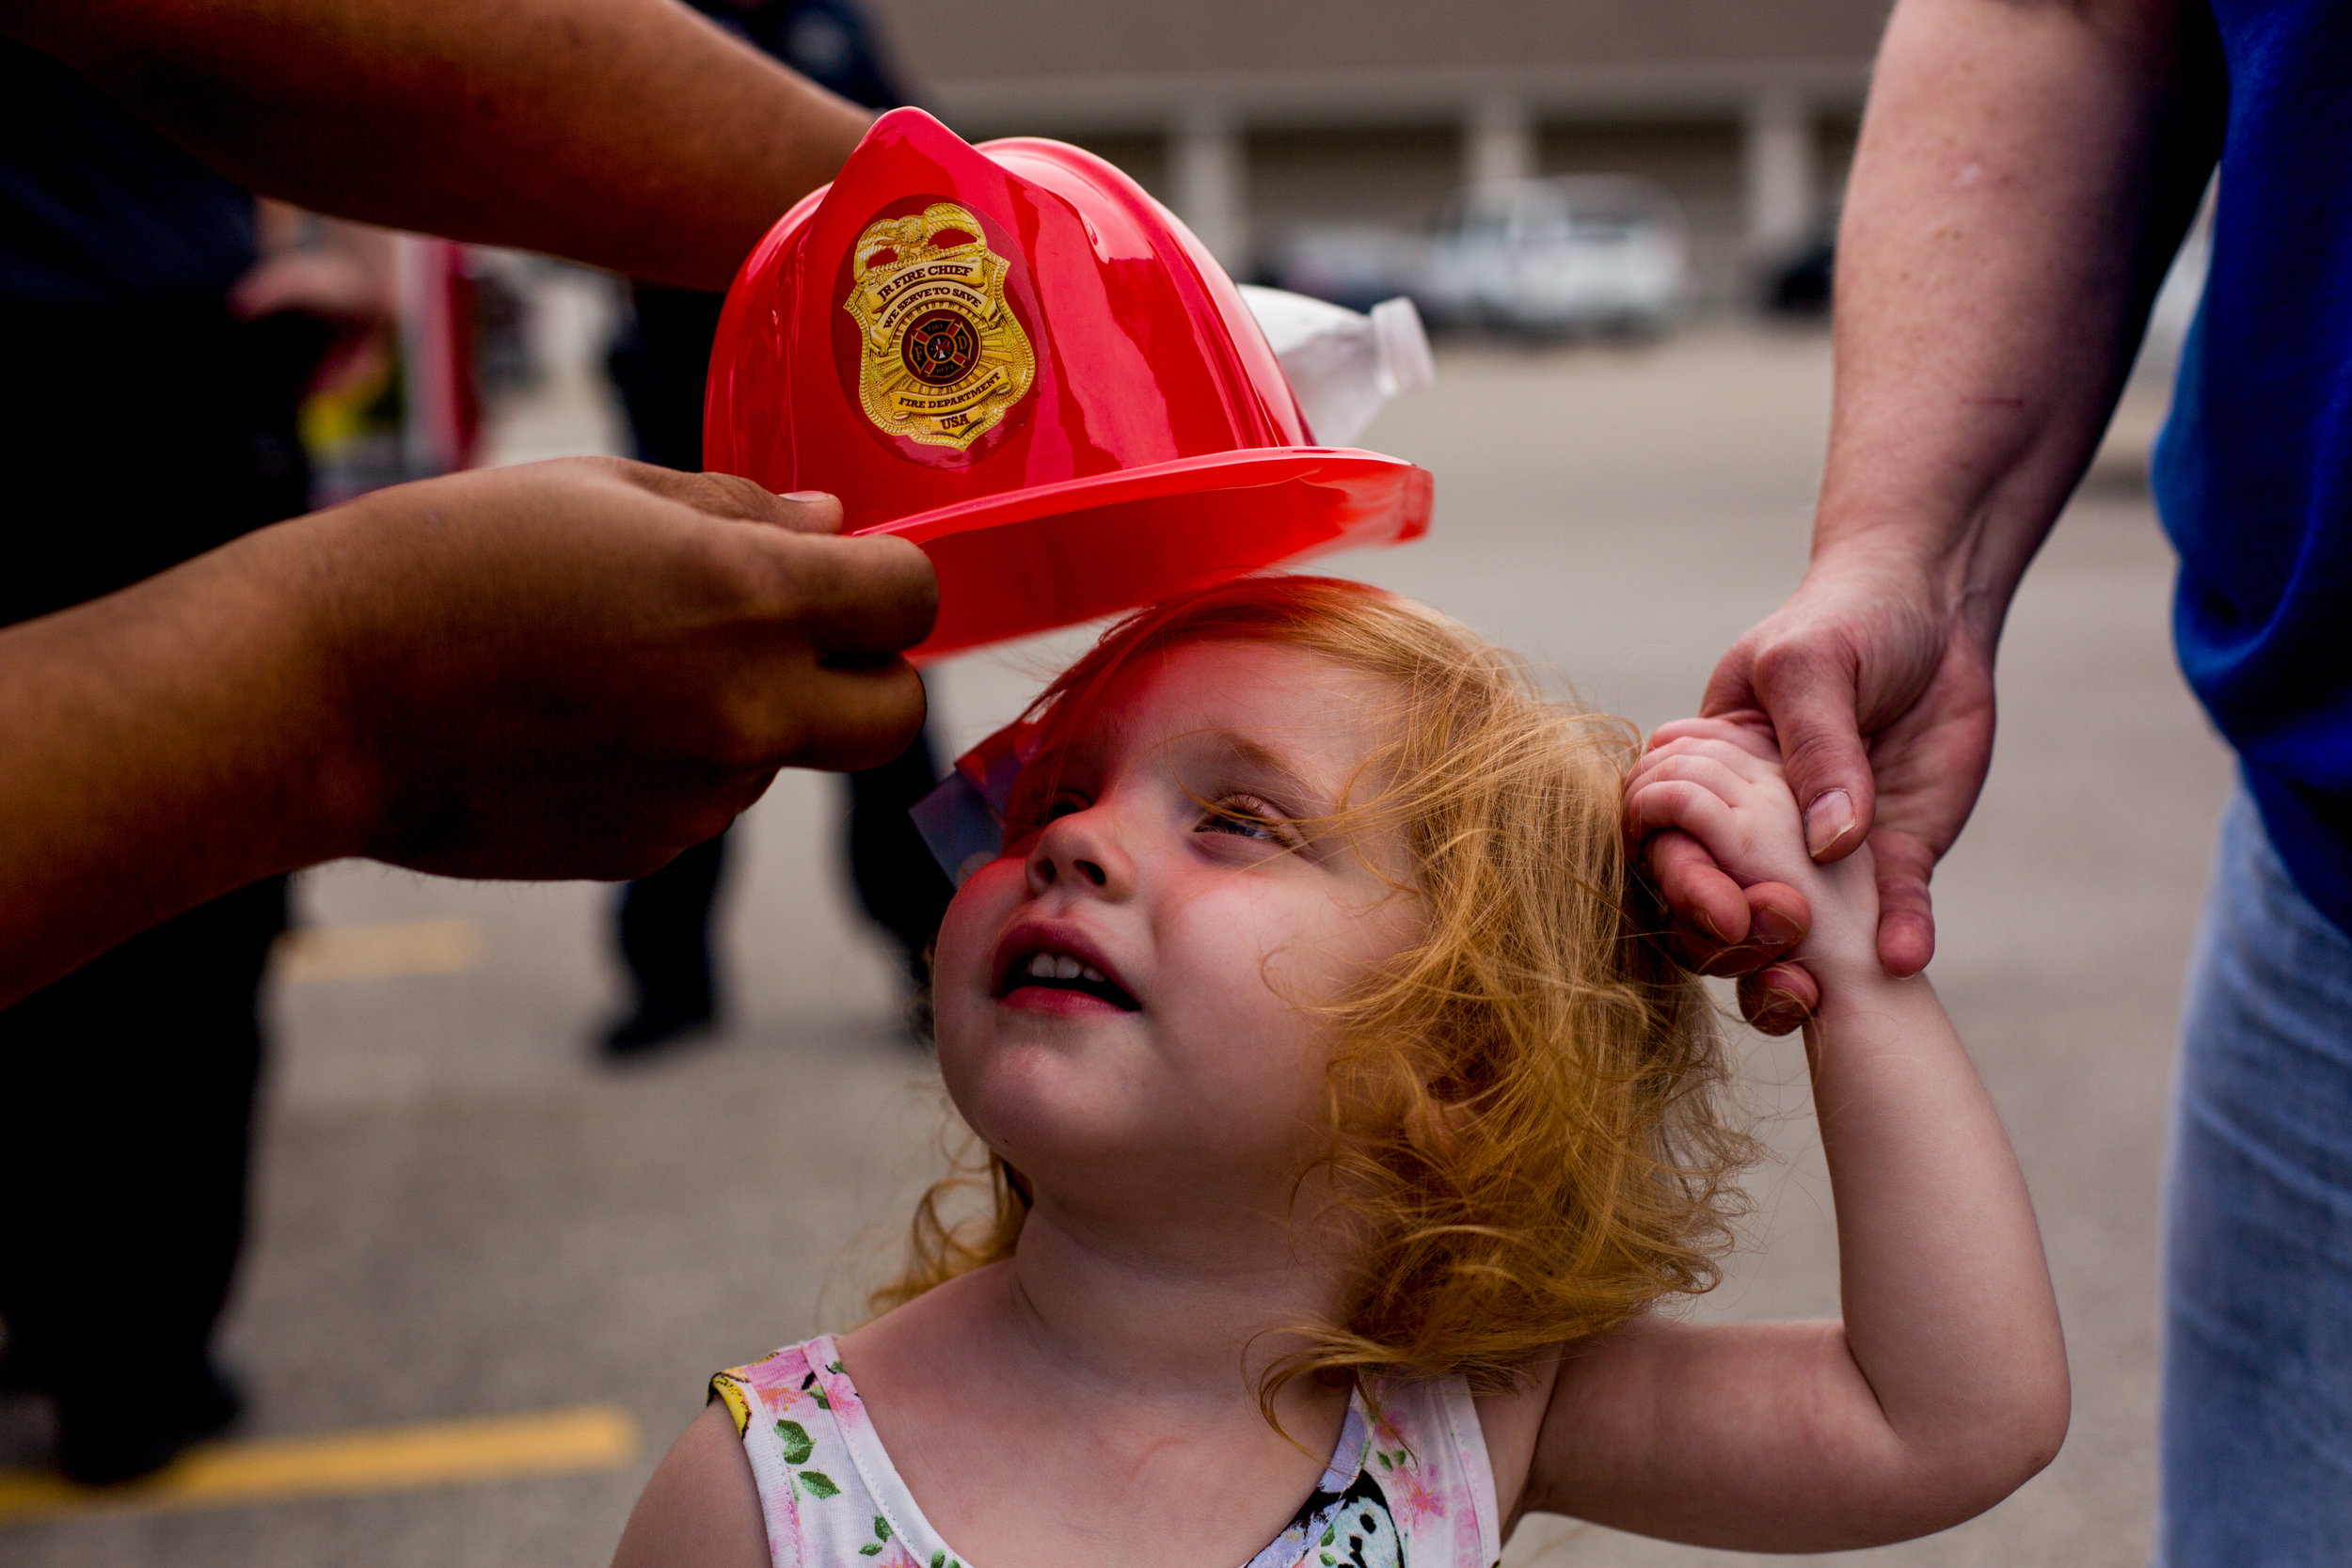 Lauren Pitrowski of Jasper, 2, held the hand of her grandmother, Jeannine Martin of Jasper, as a Jasper firefighter tried to place a hat on her head during the Fifth Street School Community Health Fair on Thursday in Jasper. More than 30 vendors set up at Fifth Street to promote healthy living with nutritious snacks and several activities for families to enjoy.